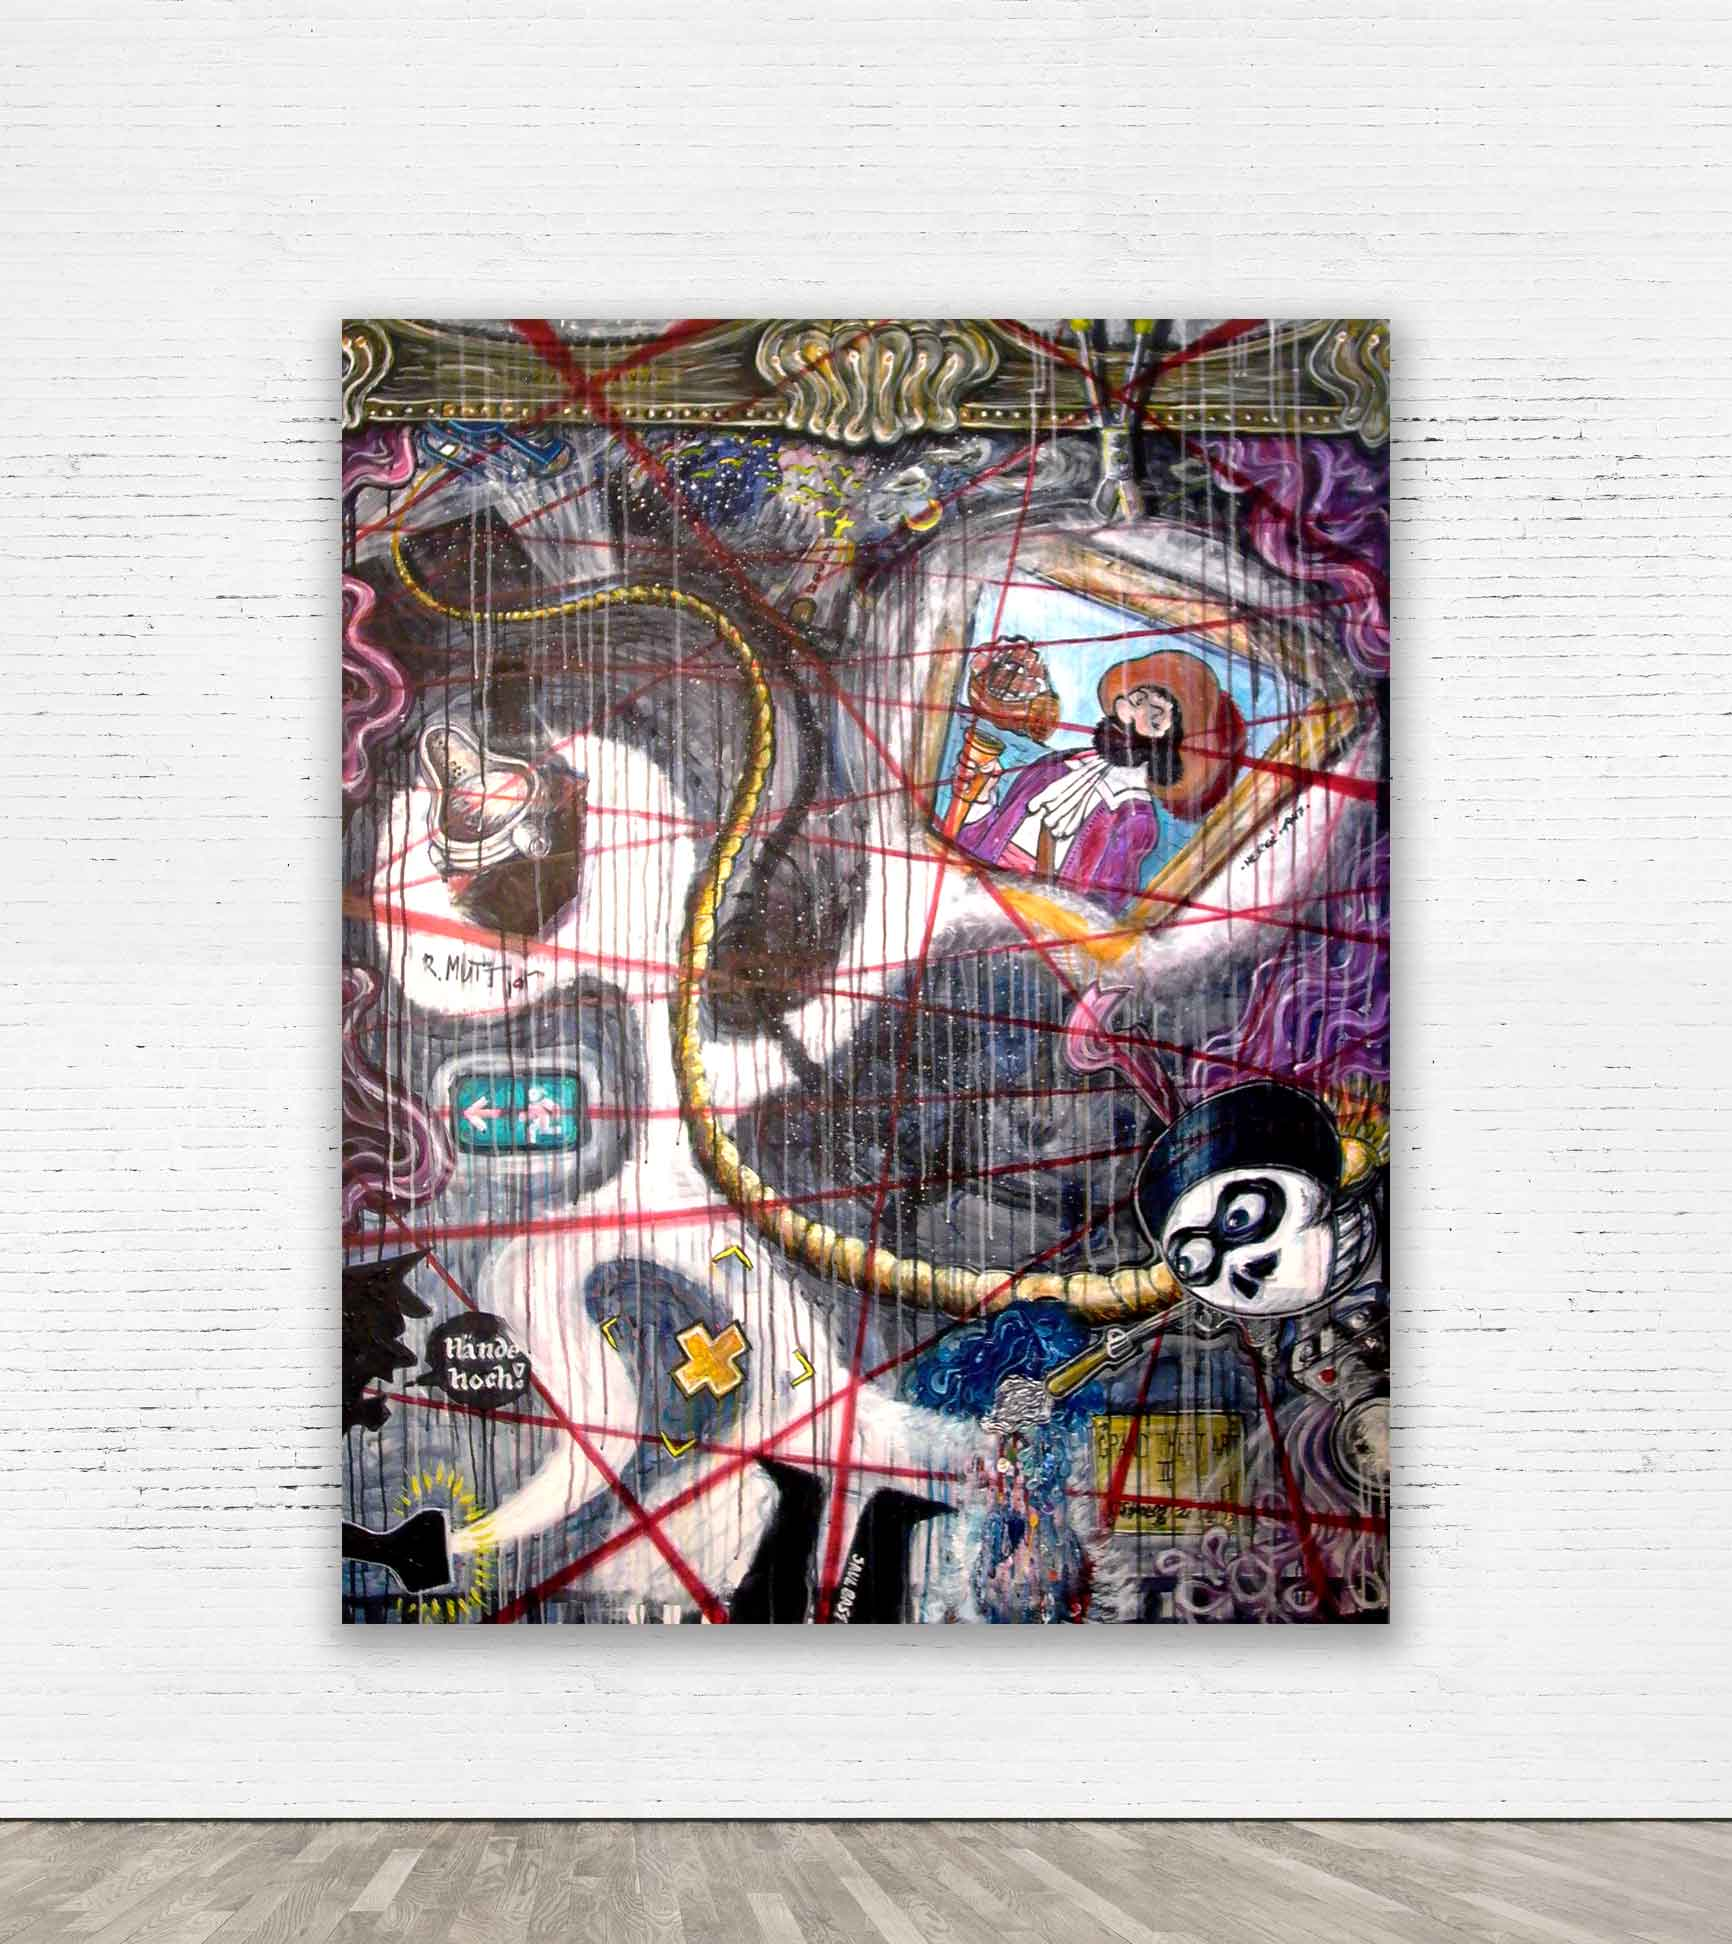 """GRAND THEFT ART II""  2009 Acrylic on canvas 120 x 160 cm   SOLD"